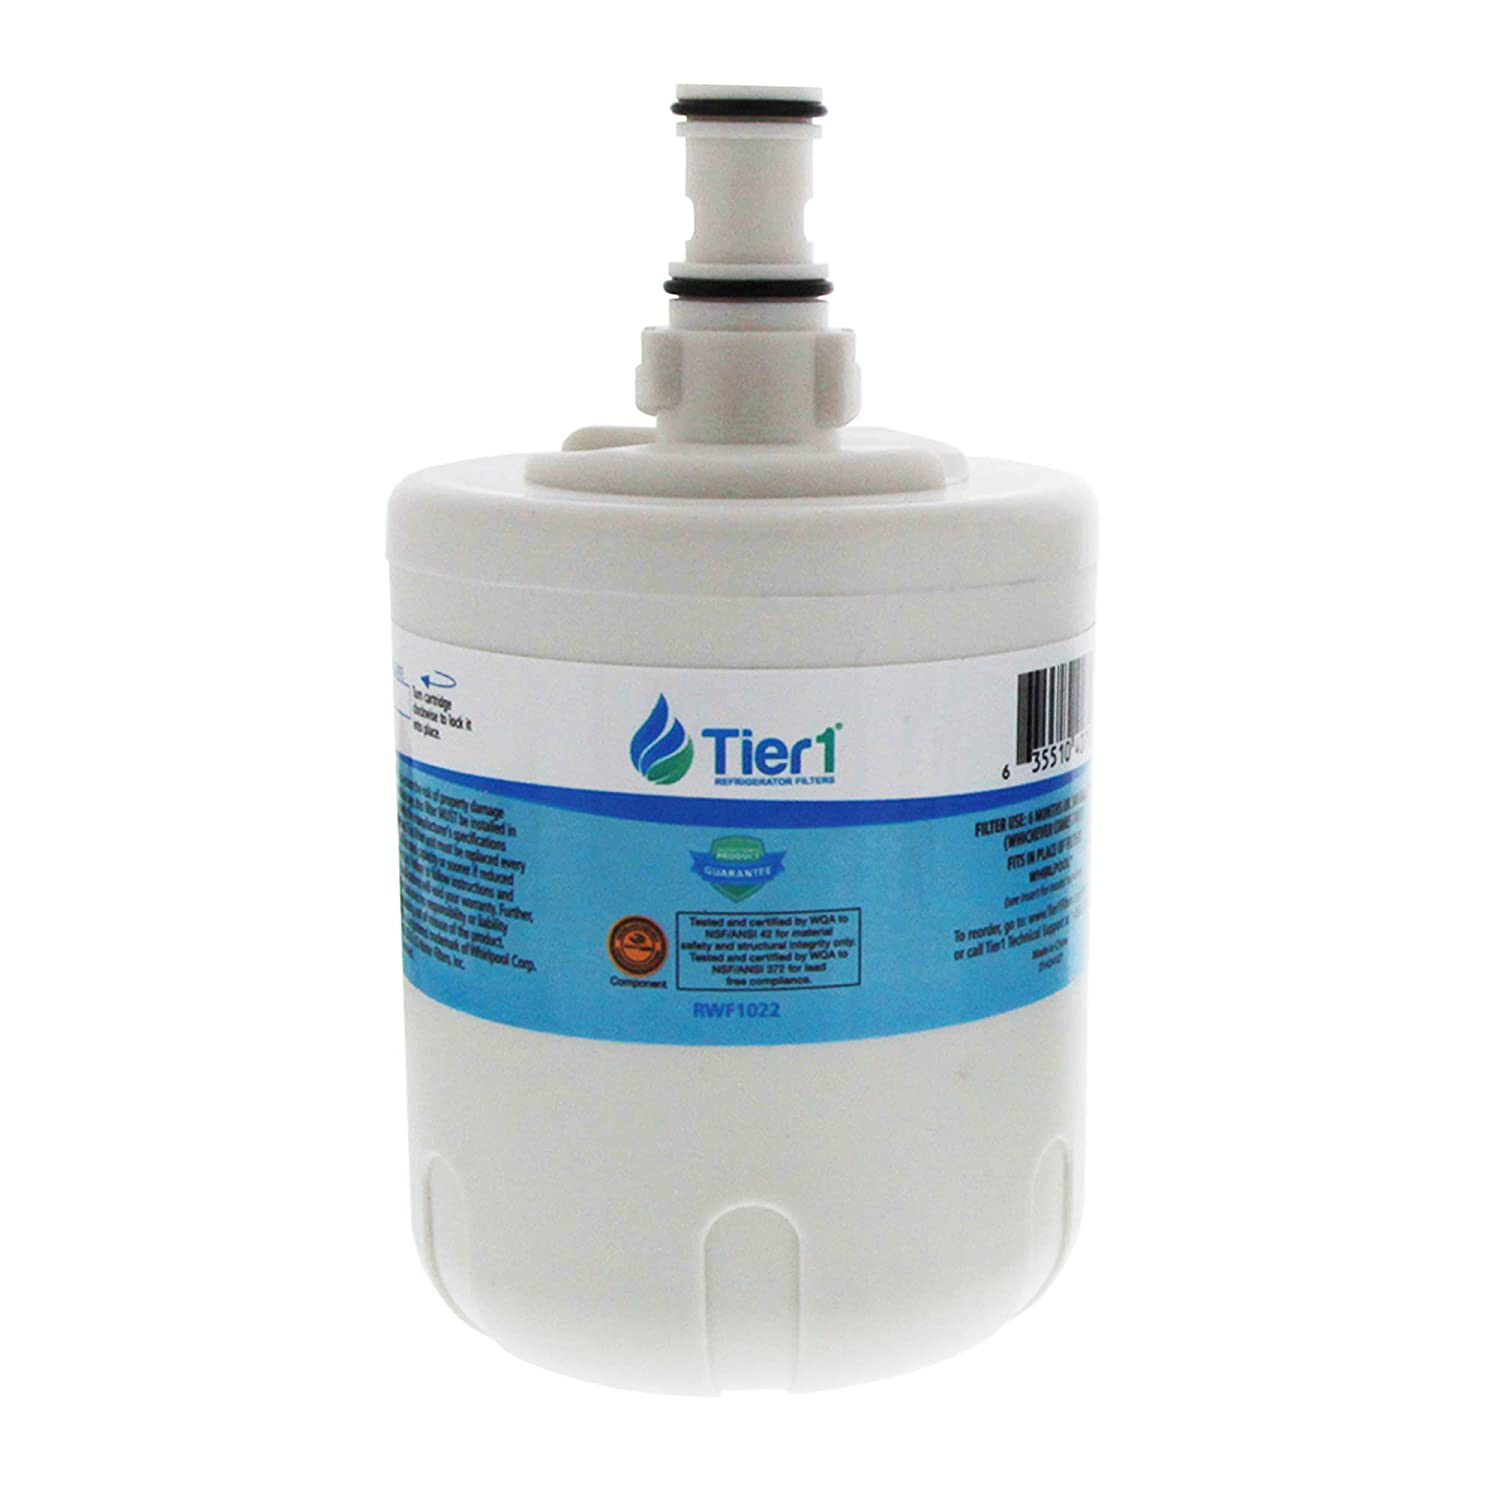 Tier1 Replacement for Whirlpool 8171413, Kenmore 9002, EDR8D1, 469002, 8171414 Refrigerator Water Filter